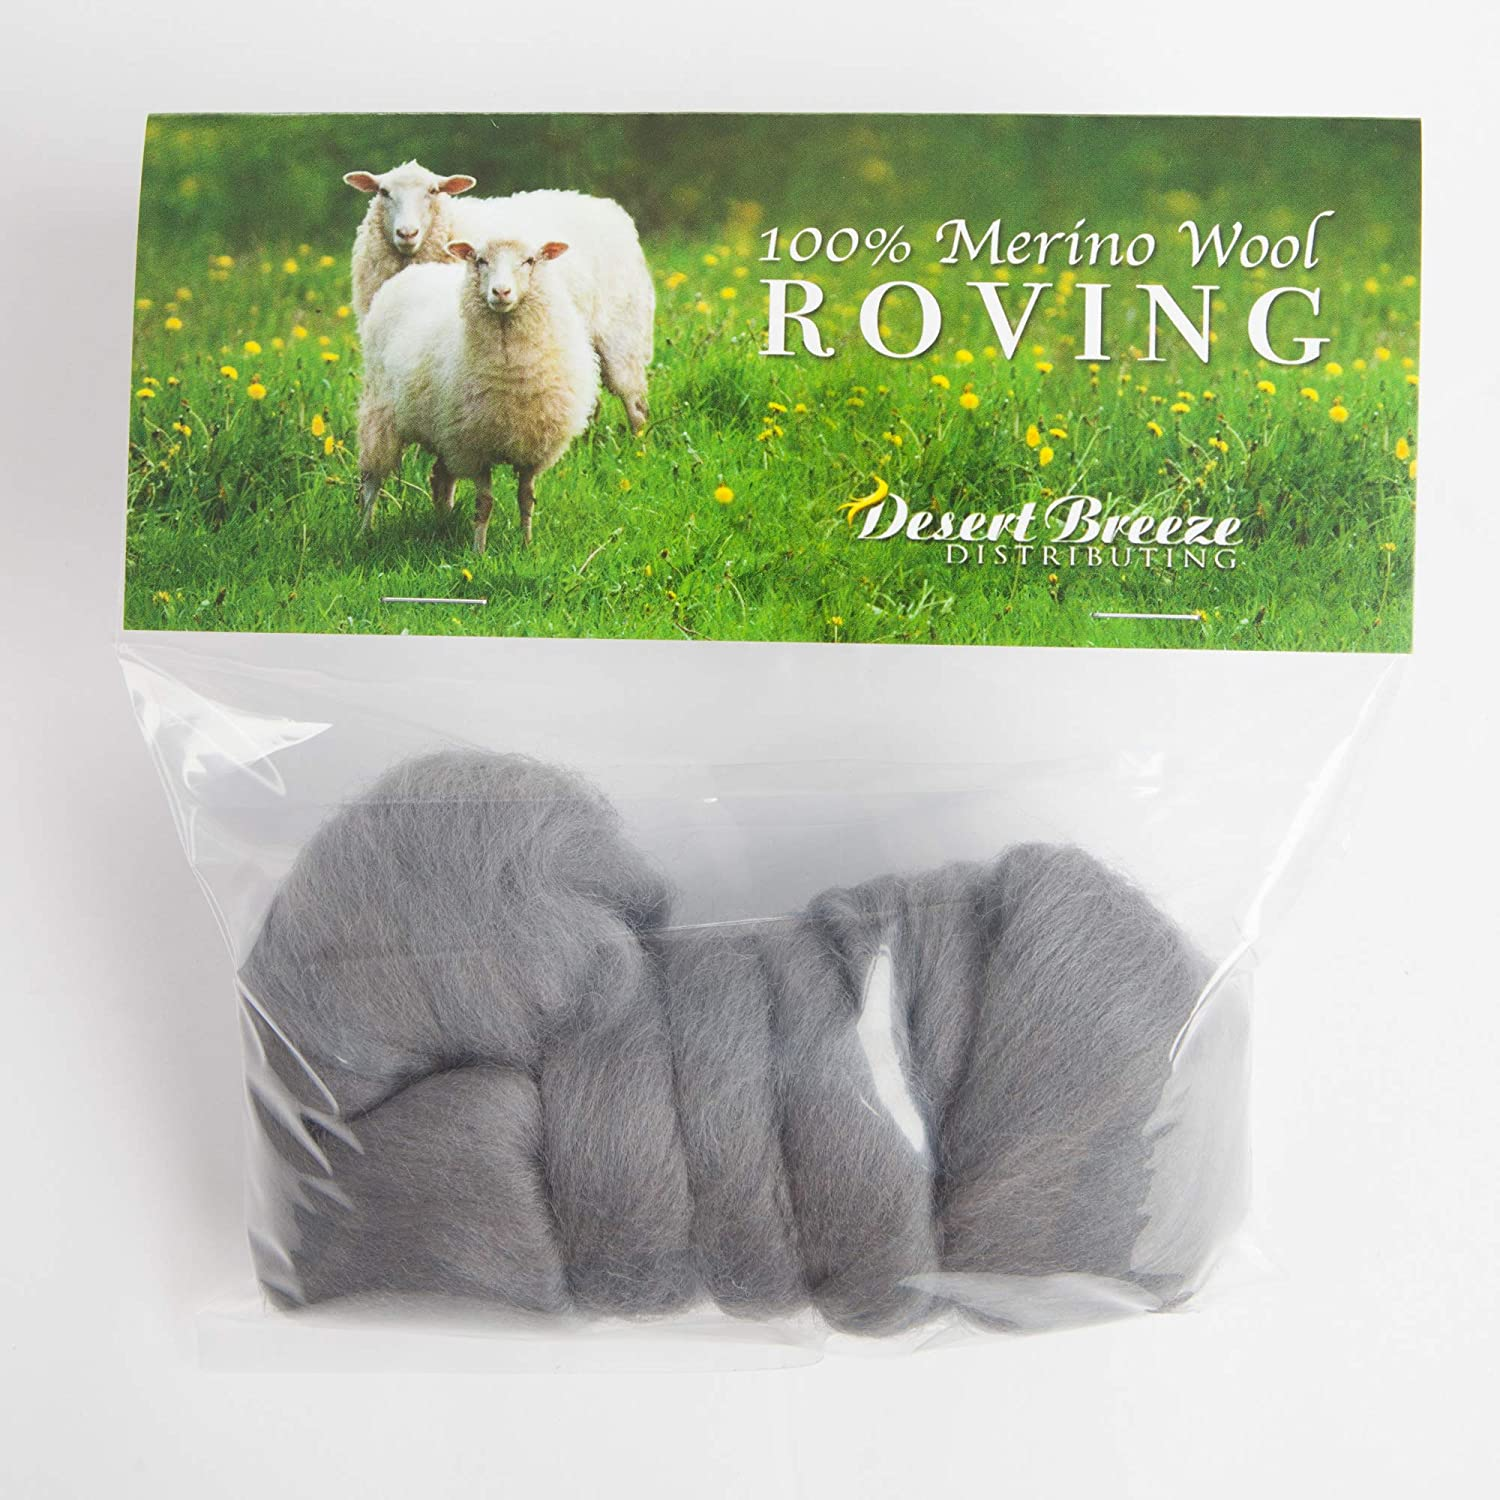 Premium Combed Top 21 Micron 100/% Pure Wool Color Spice Merino Wool Roving Perfect for Felting Projects Made in The UK